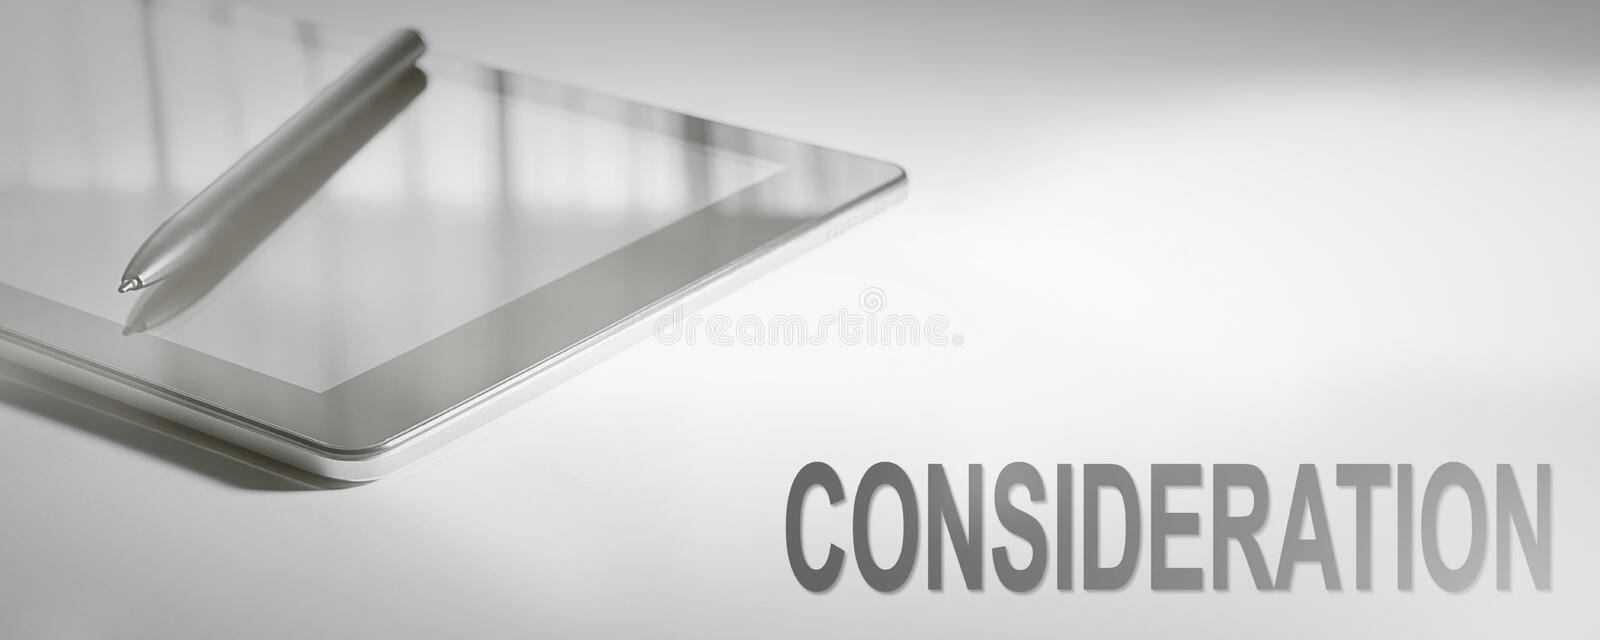 CONSIDERATION Business Concept Digital Technology. Graphic Concept stock photo